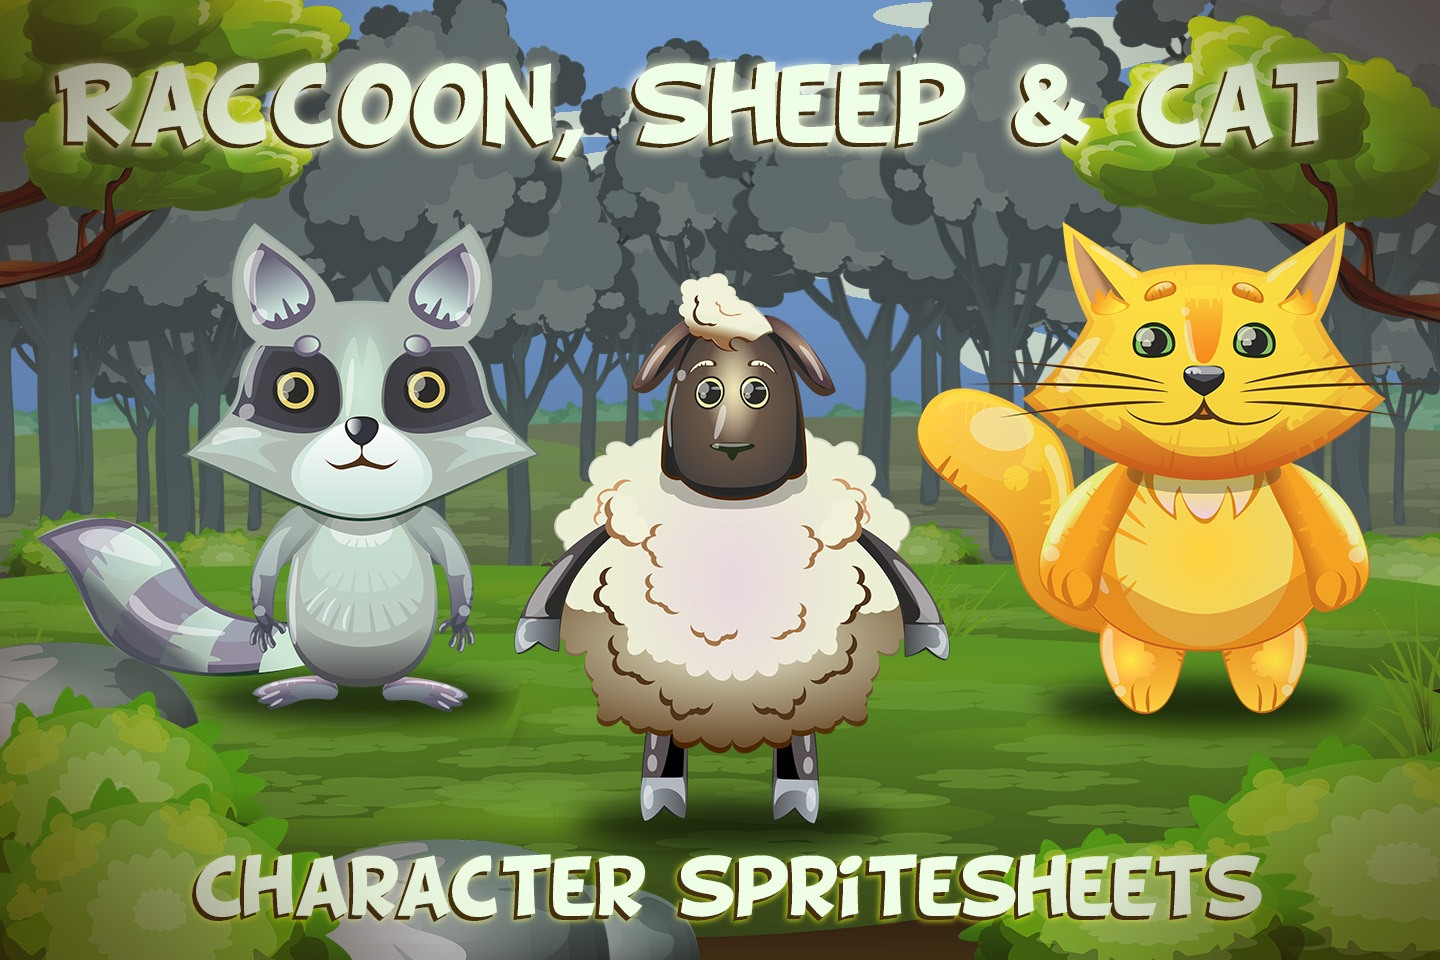 Raccoon, Sheep and Cat 2D Game Sprites